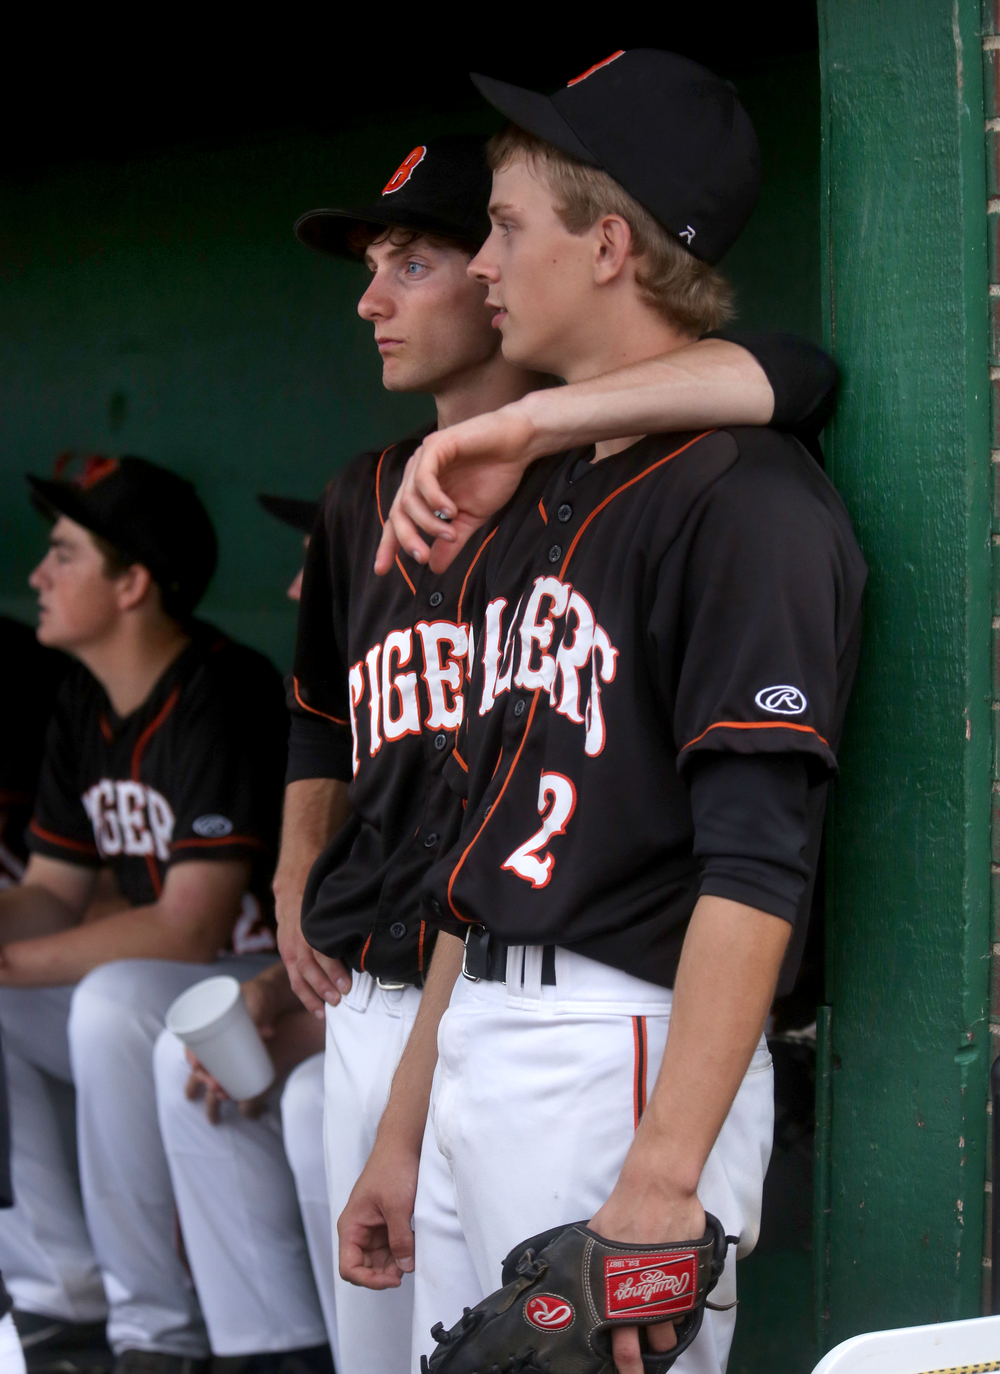 Tiger teammates and pitchers Rick Dour in middle Supersectional pitcher Dalton Leischner at right strategized before the game in the dugout. David Spencer/The State Journal-Register